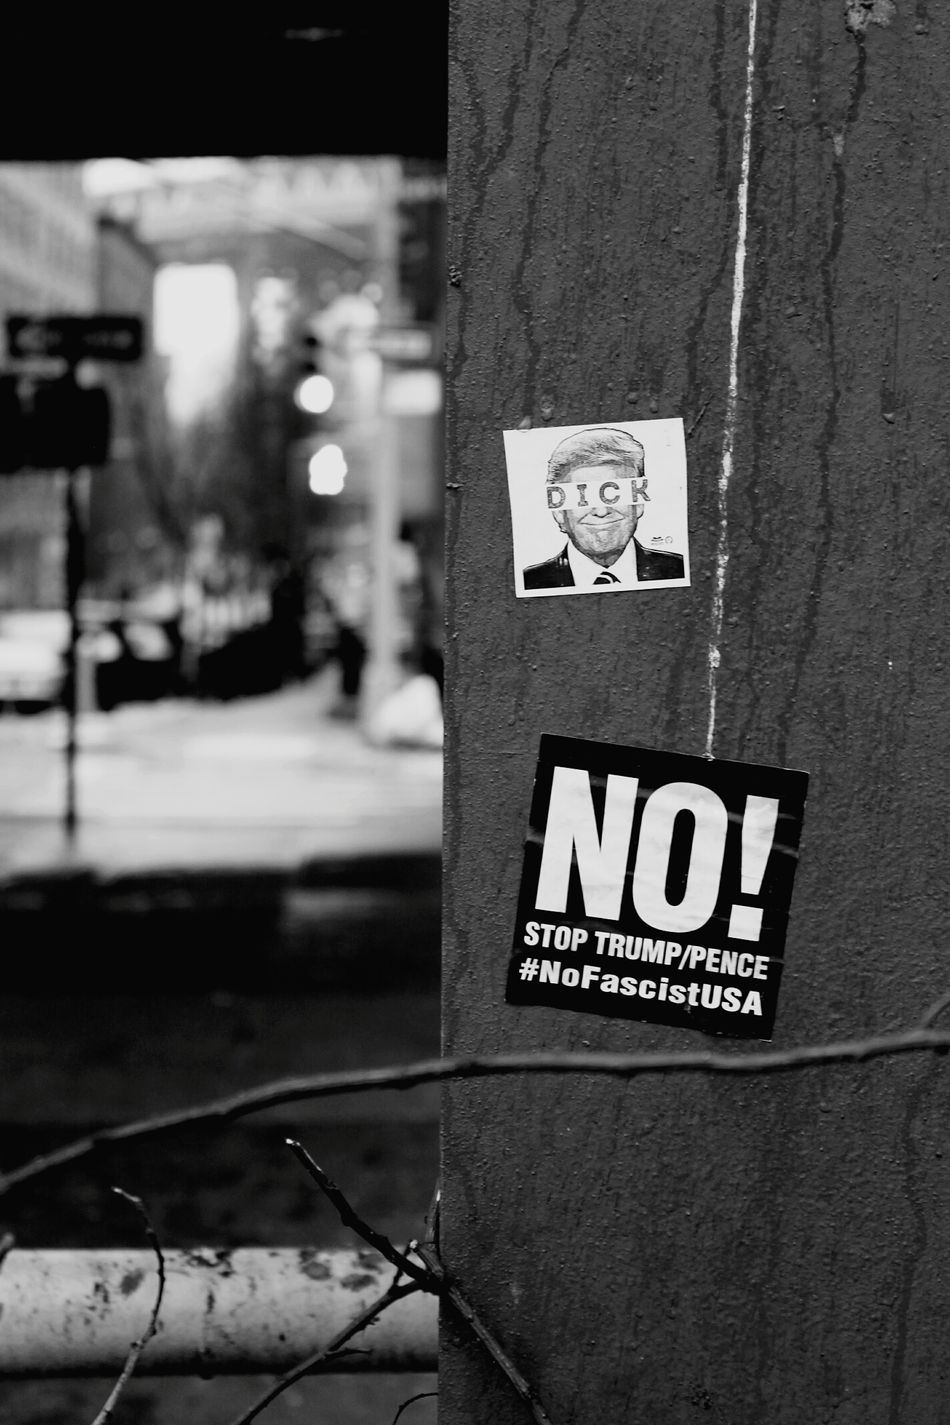 Text No People Close-up Day Outdoors EyeEmNewHere Welcome To Black Political Political Street Art Political Satire Political Activism Prison Blackandwhite Black And White Black & White The Secret Spaces Resist